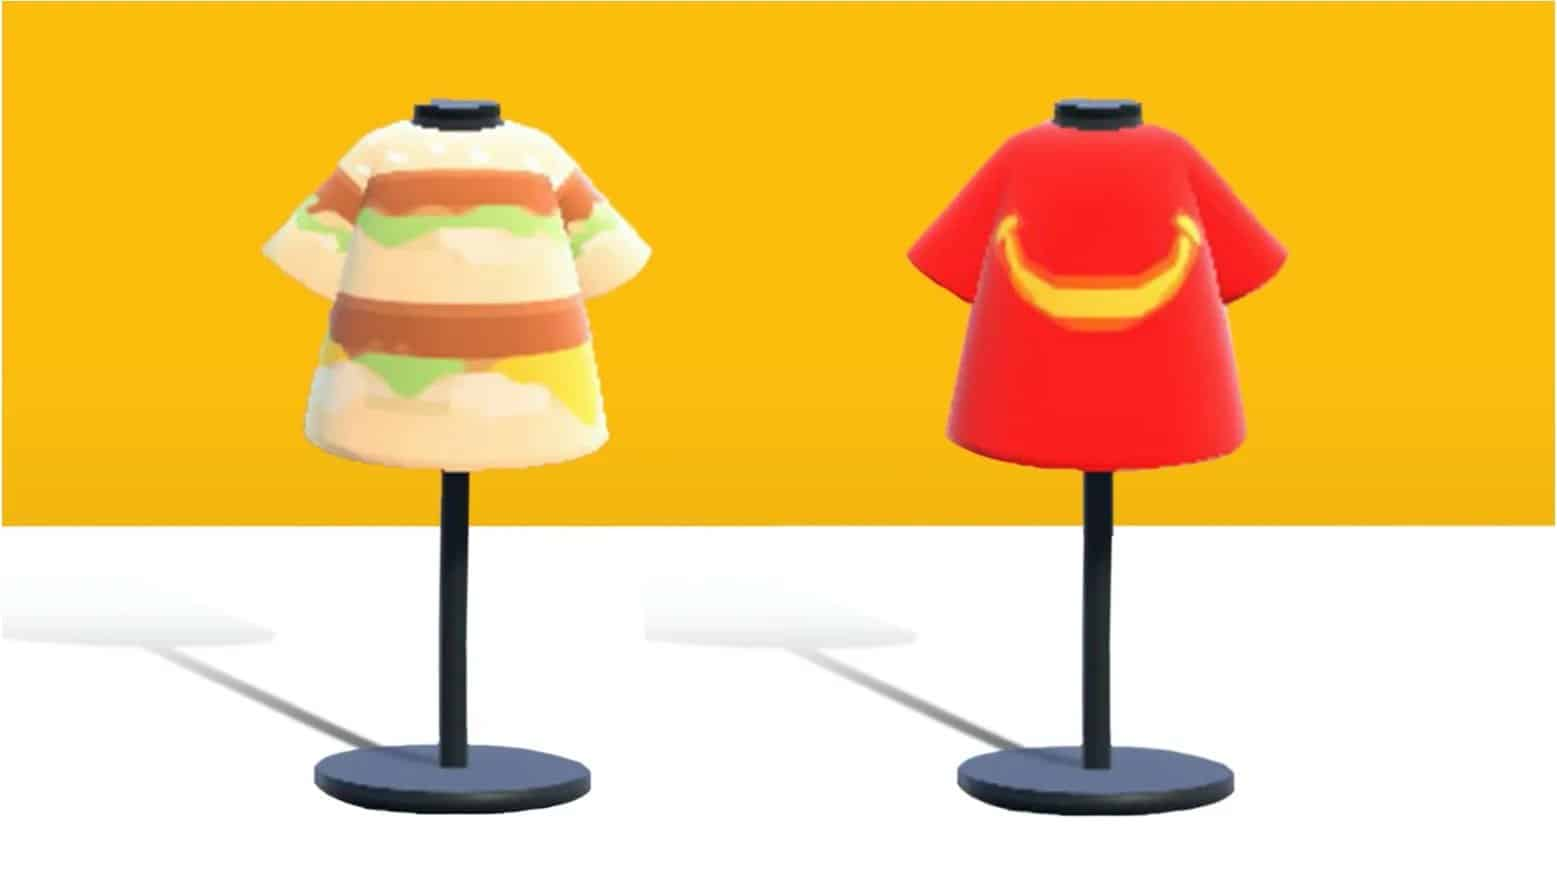 Animal Crossing New Horizons has official McDonald's clothing